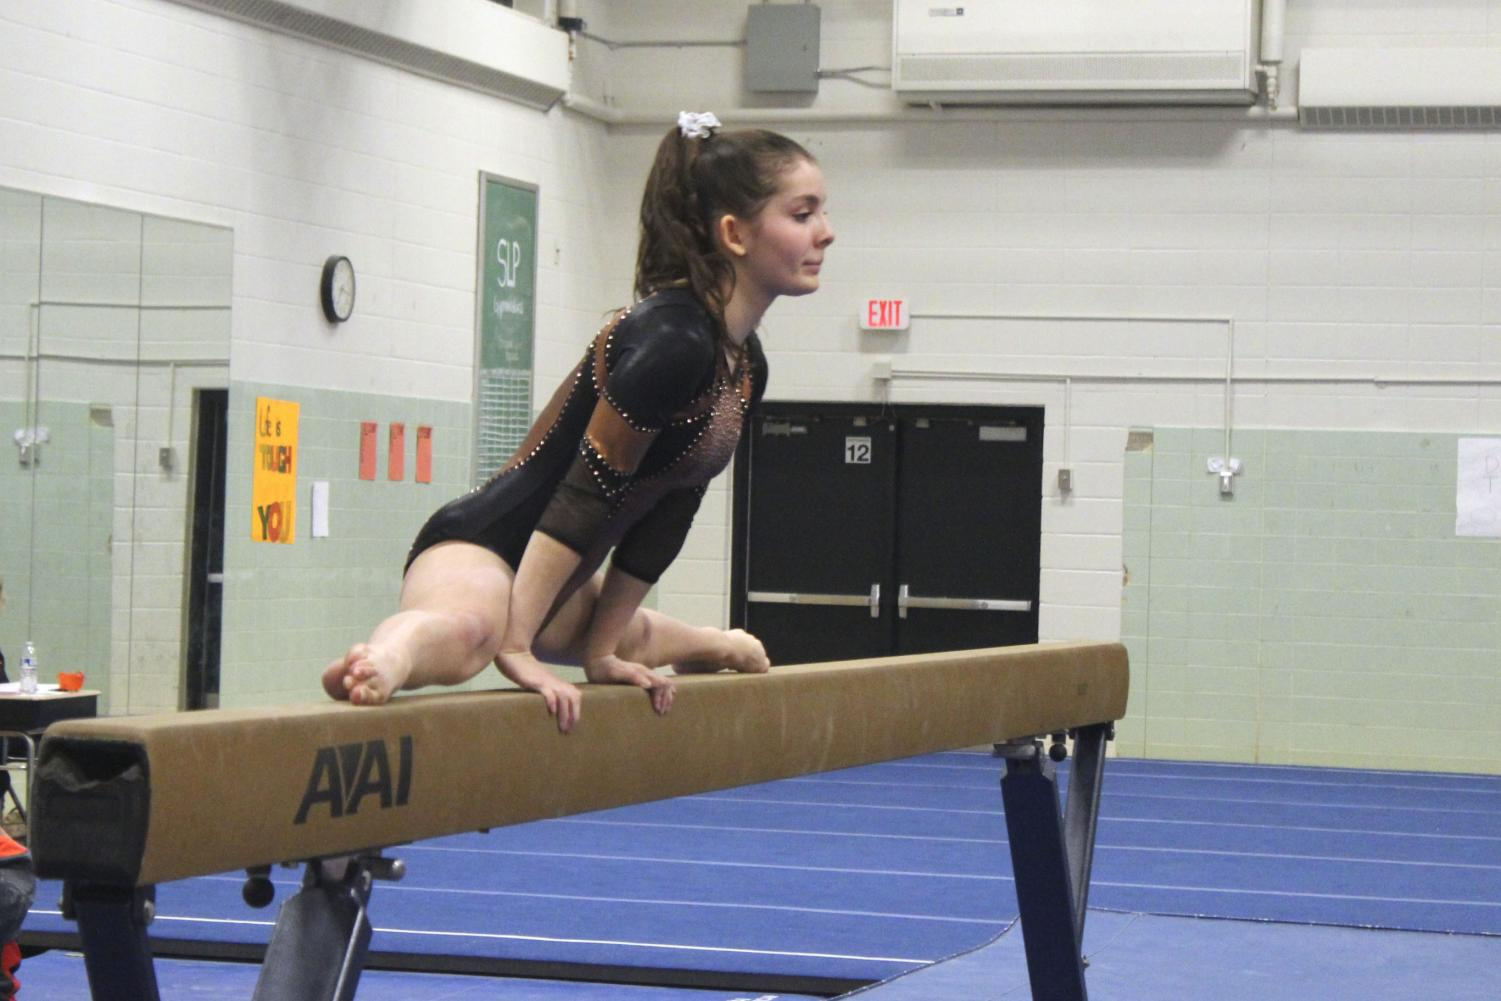 Sophomore Rachel Stein begins her routine on the beam Dec. 11 at their home meet against Richfield. The Park Gymnastics' team has begun strength training once a week to help them develop their skills in preparation for future meets.